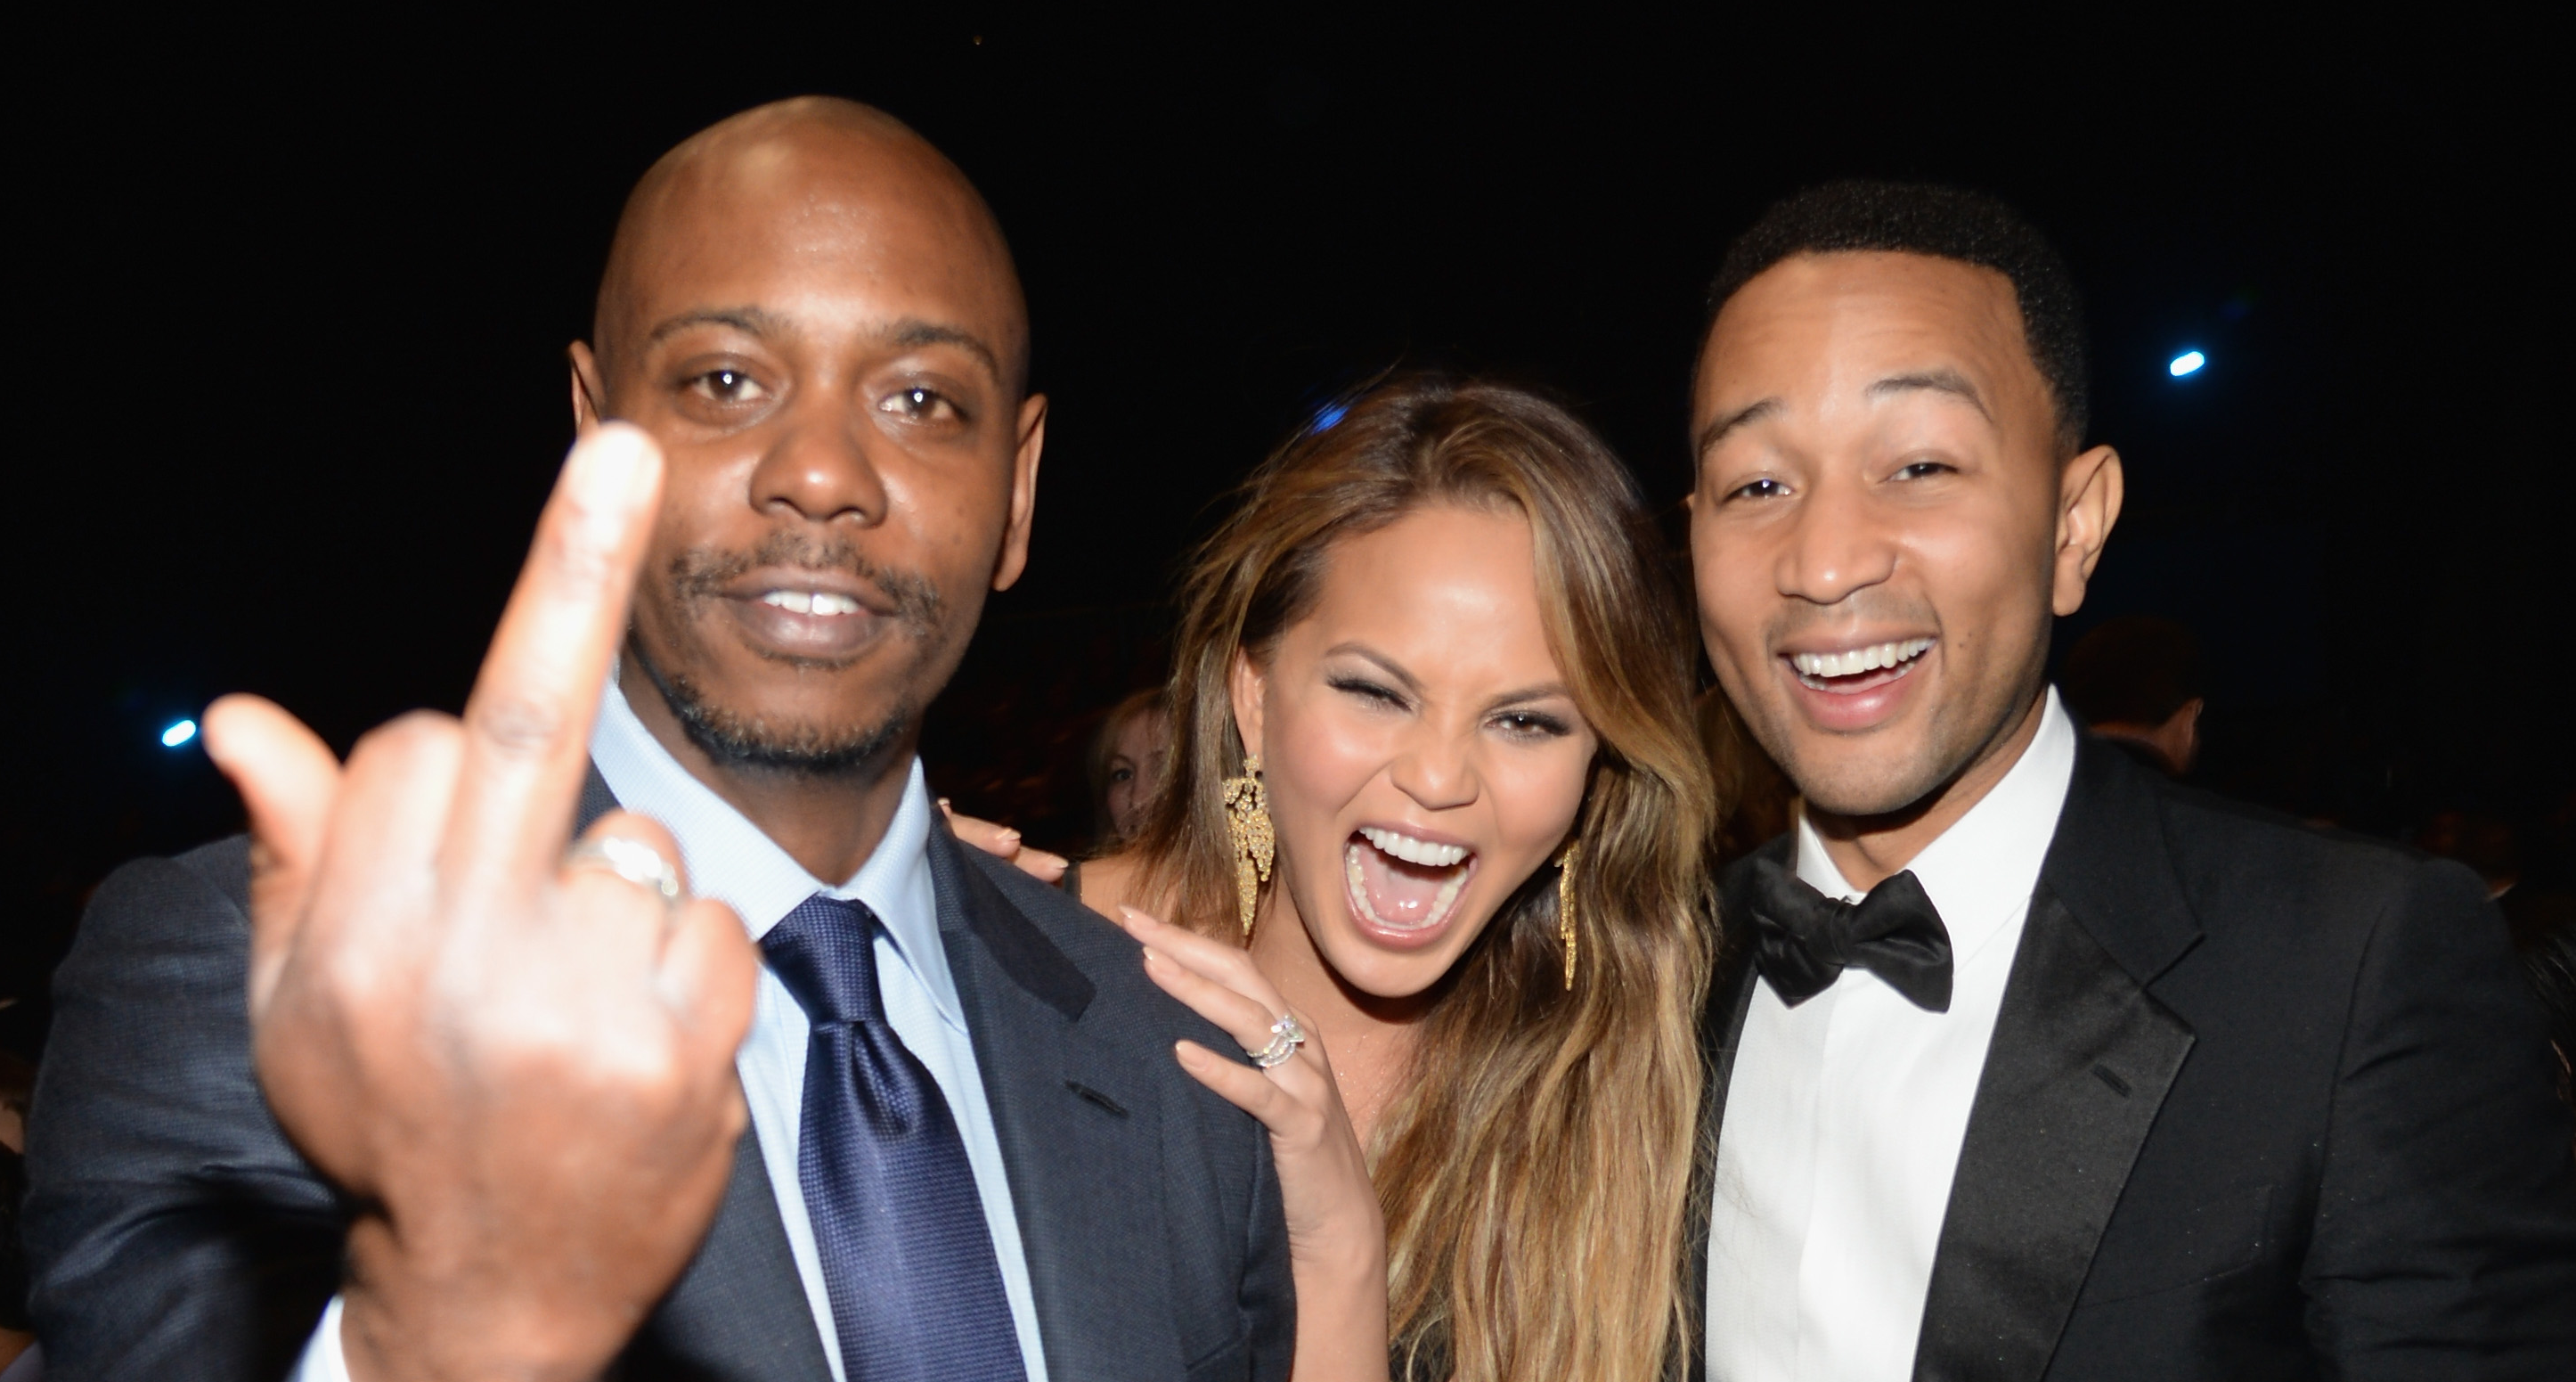 35 Times a Celebrity Gave the Middle Finger to the Camera